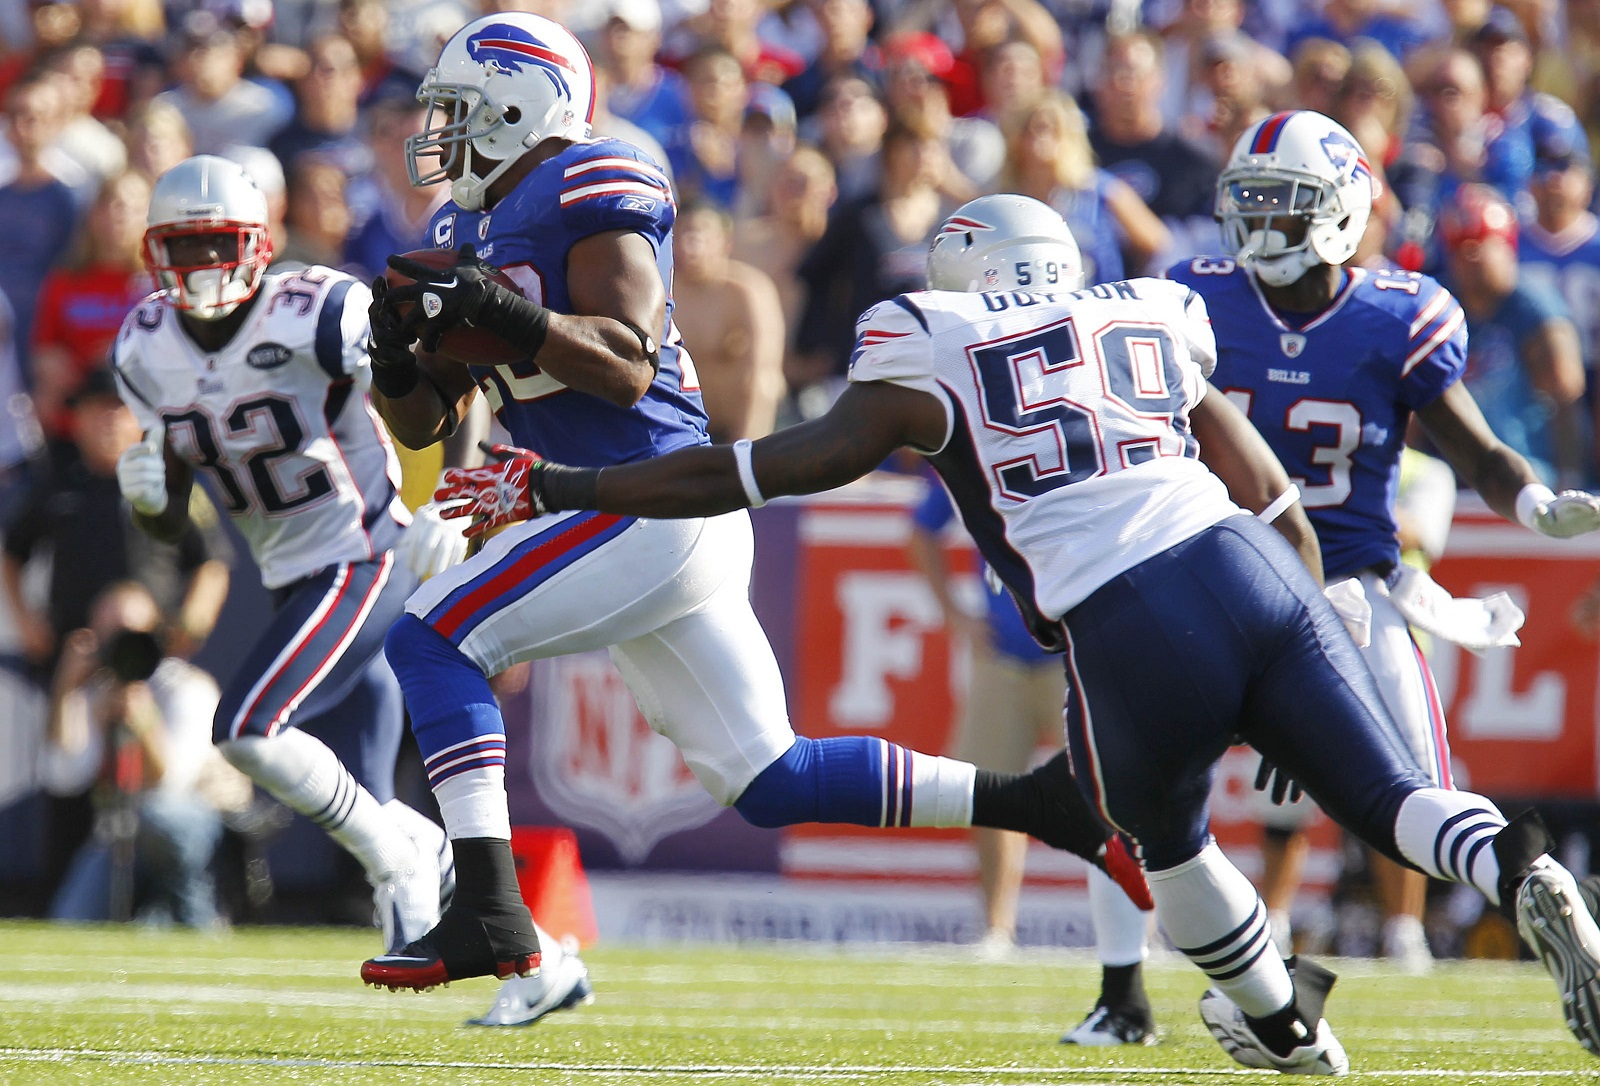 Bills running back Fred Jackson has captured Western New Yorkers' hearts like fewer players have during Buffalo's playoff drought. (Mark Mulville/Buffalo News)